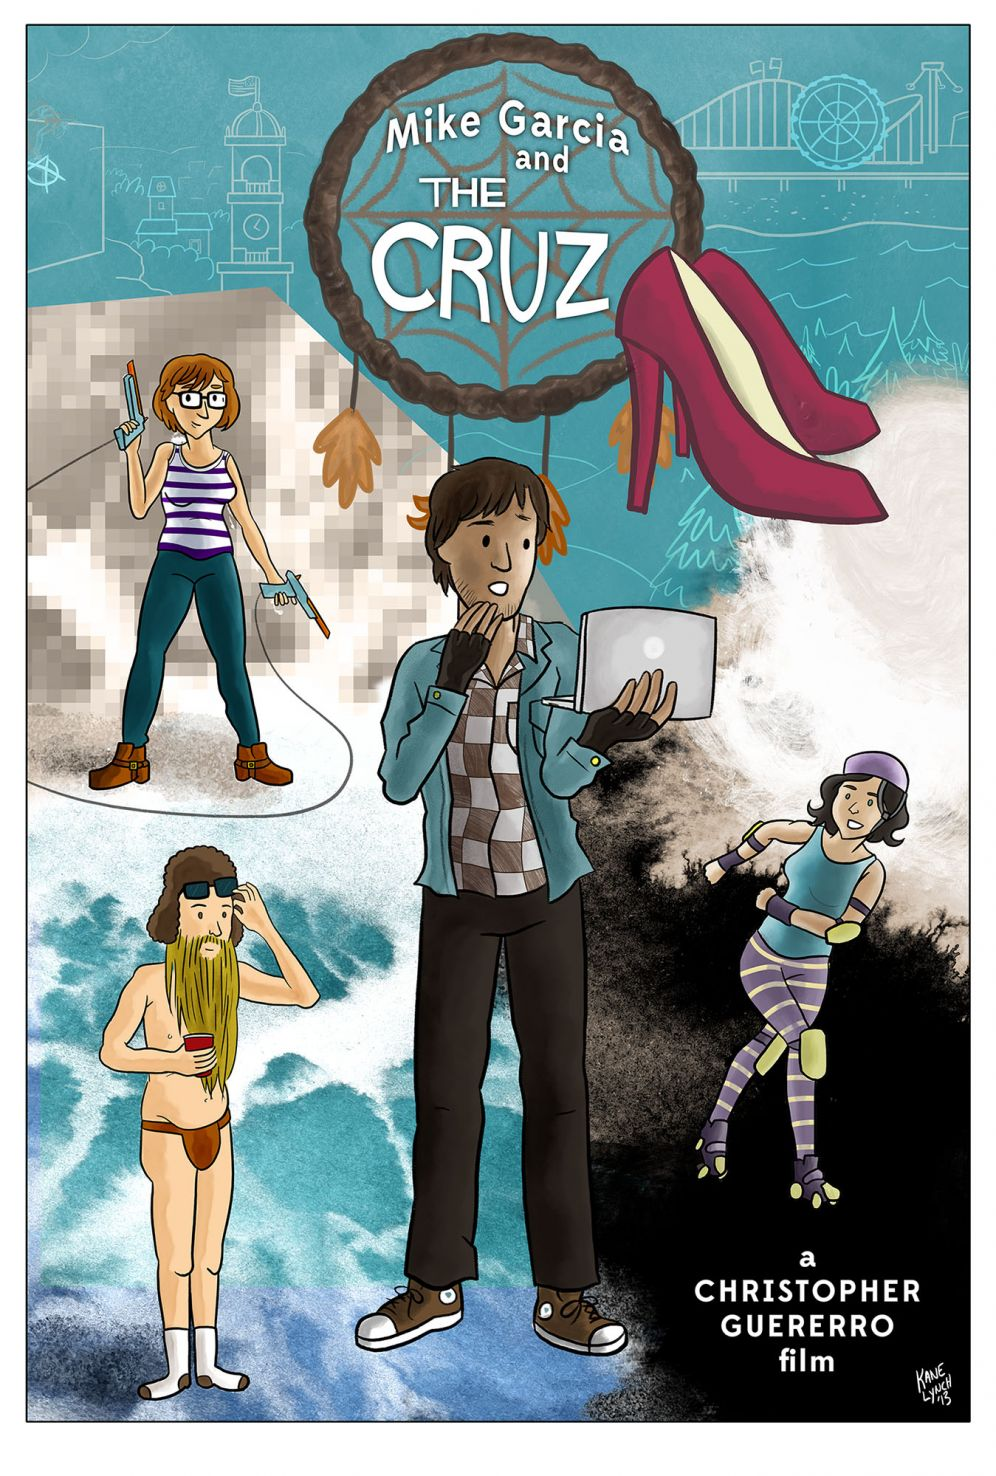 """Poster for """"Mike Garcia and The Cruz"""""""